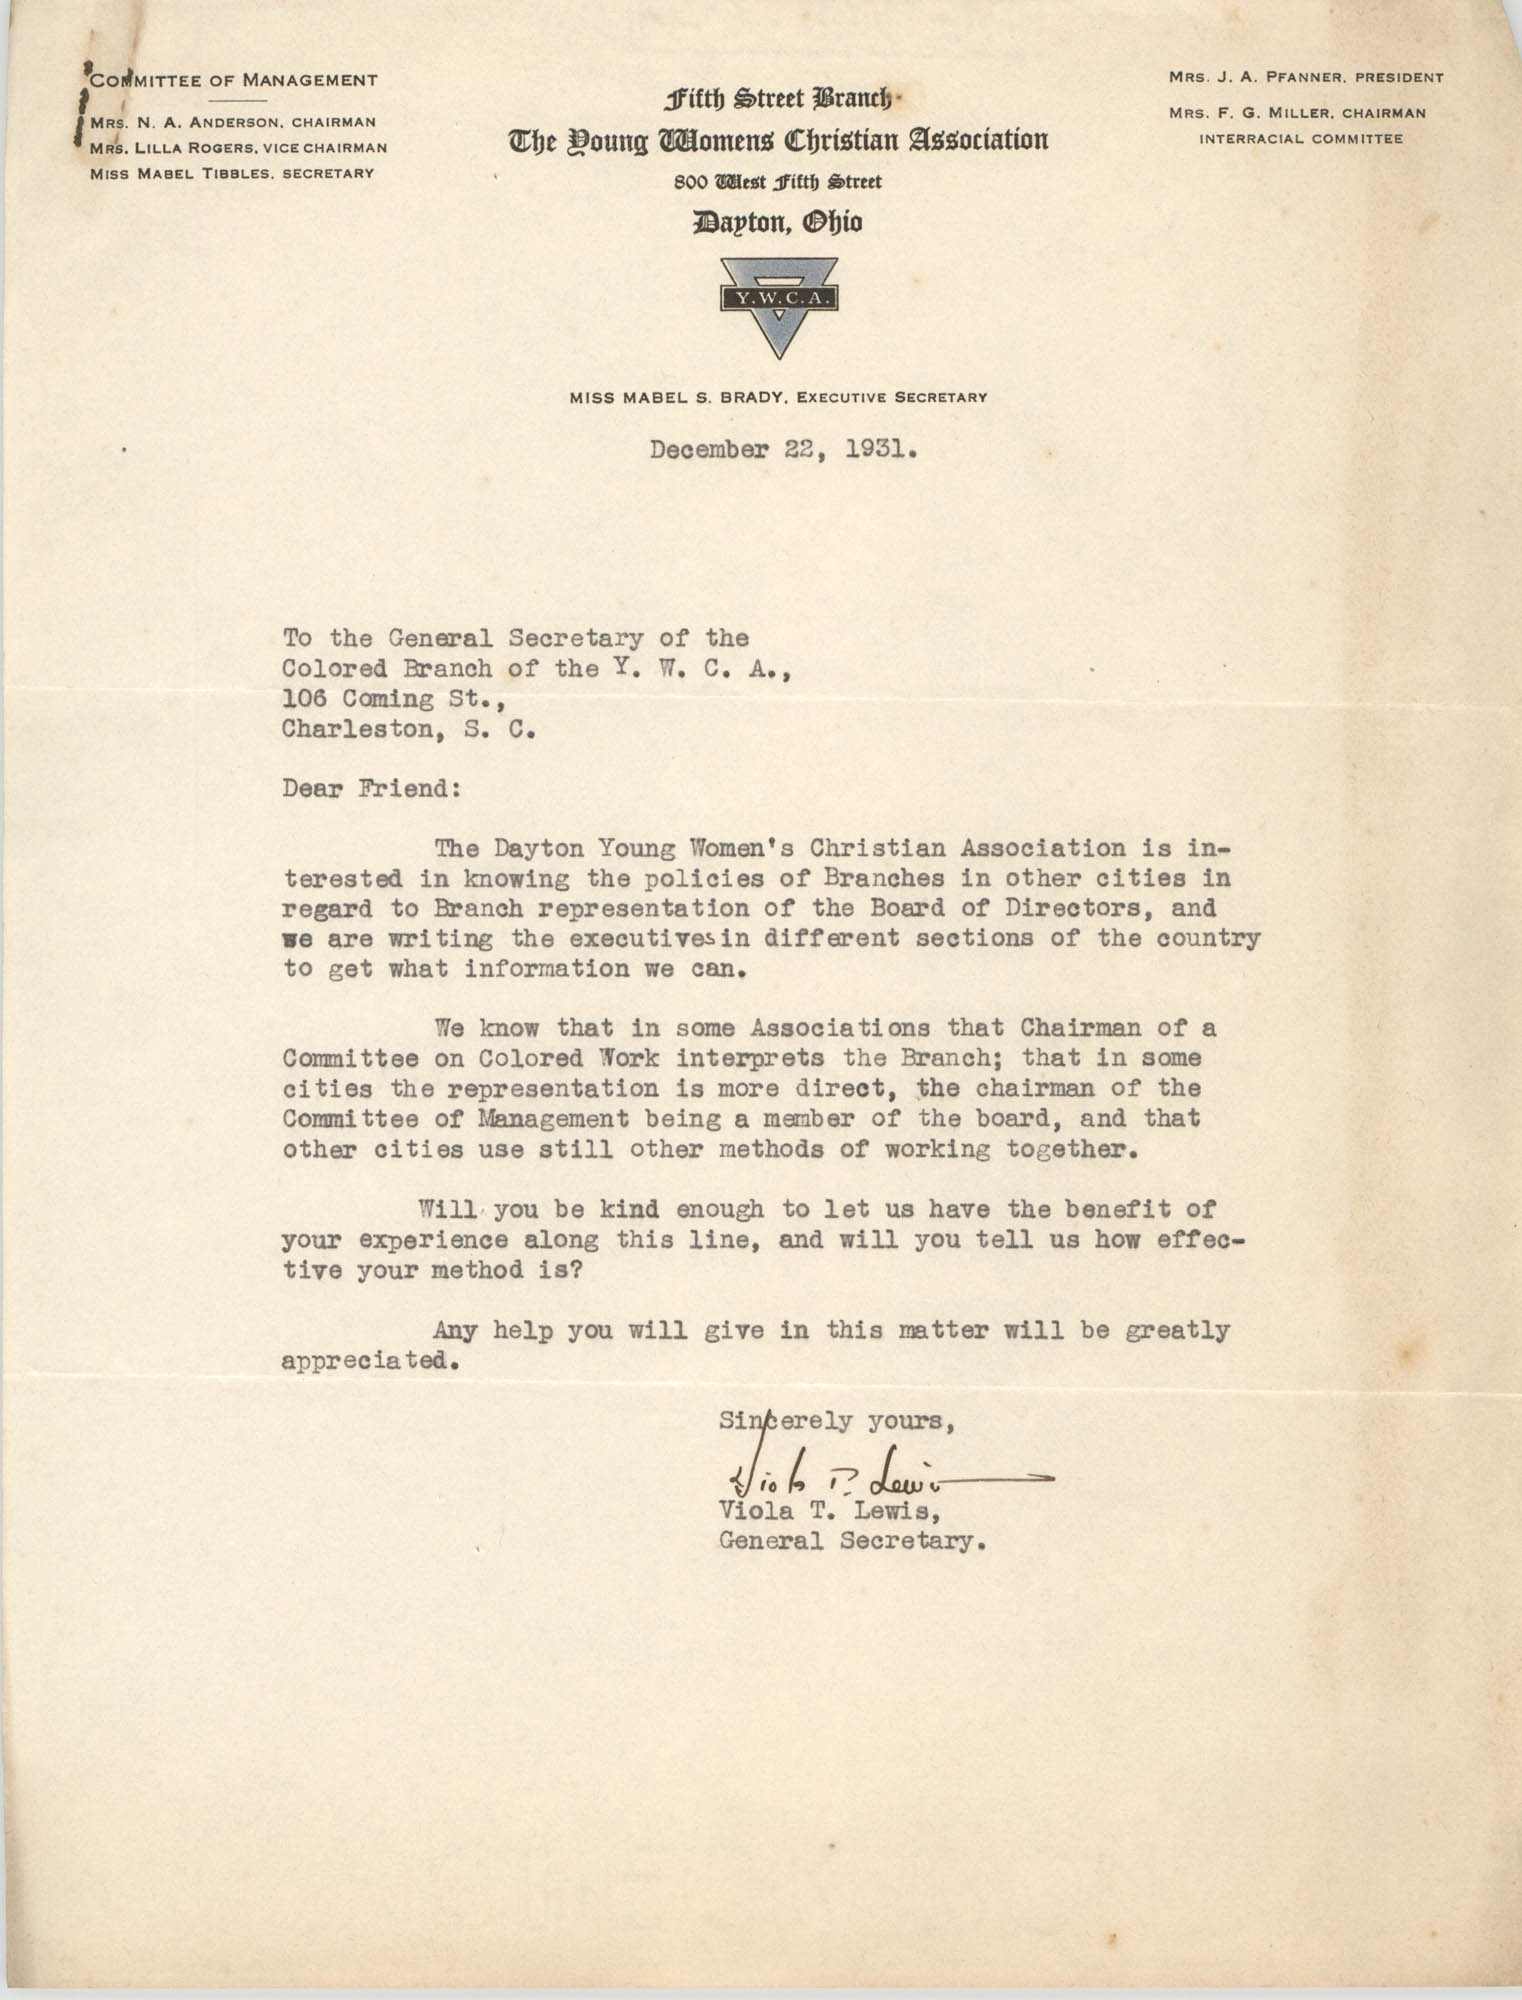 Letter from Viola T. Lewis to General Secretary for Coming Street Y.W.C.A., December 22, 1931